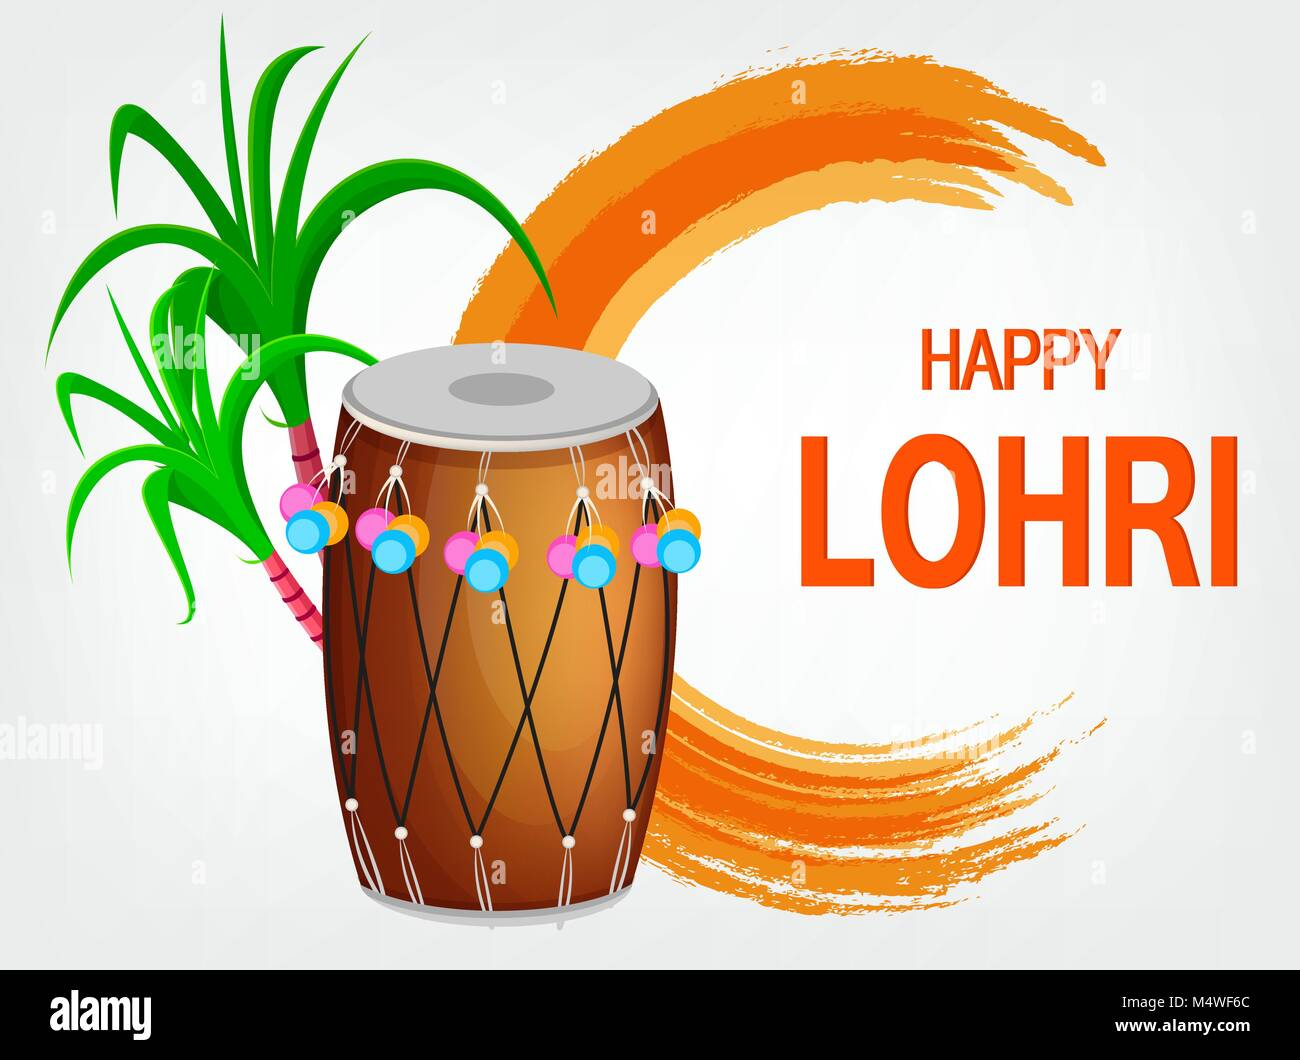 Popular winter Punjabi folk festival Lohri. Traditional decorated drum and sugarcane. Greeting card for holiday. - Stock Vector